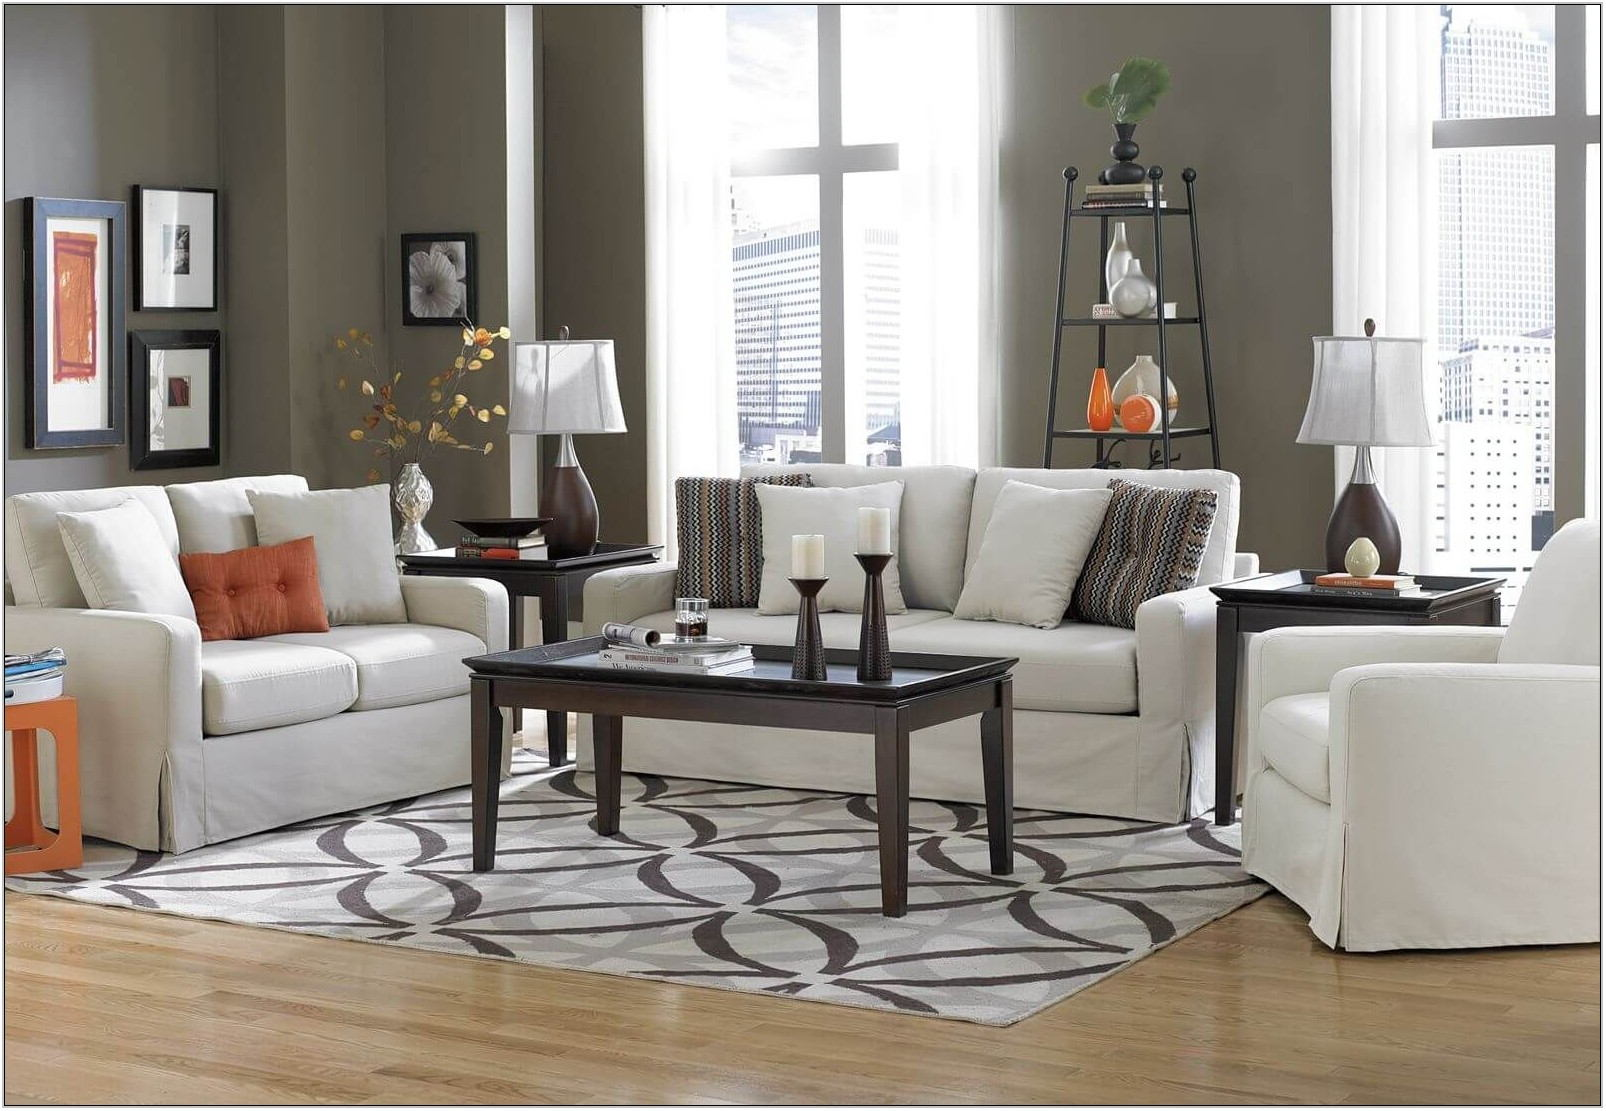 Photos Of Area Rugs In Living Rooms